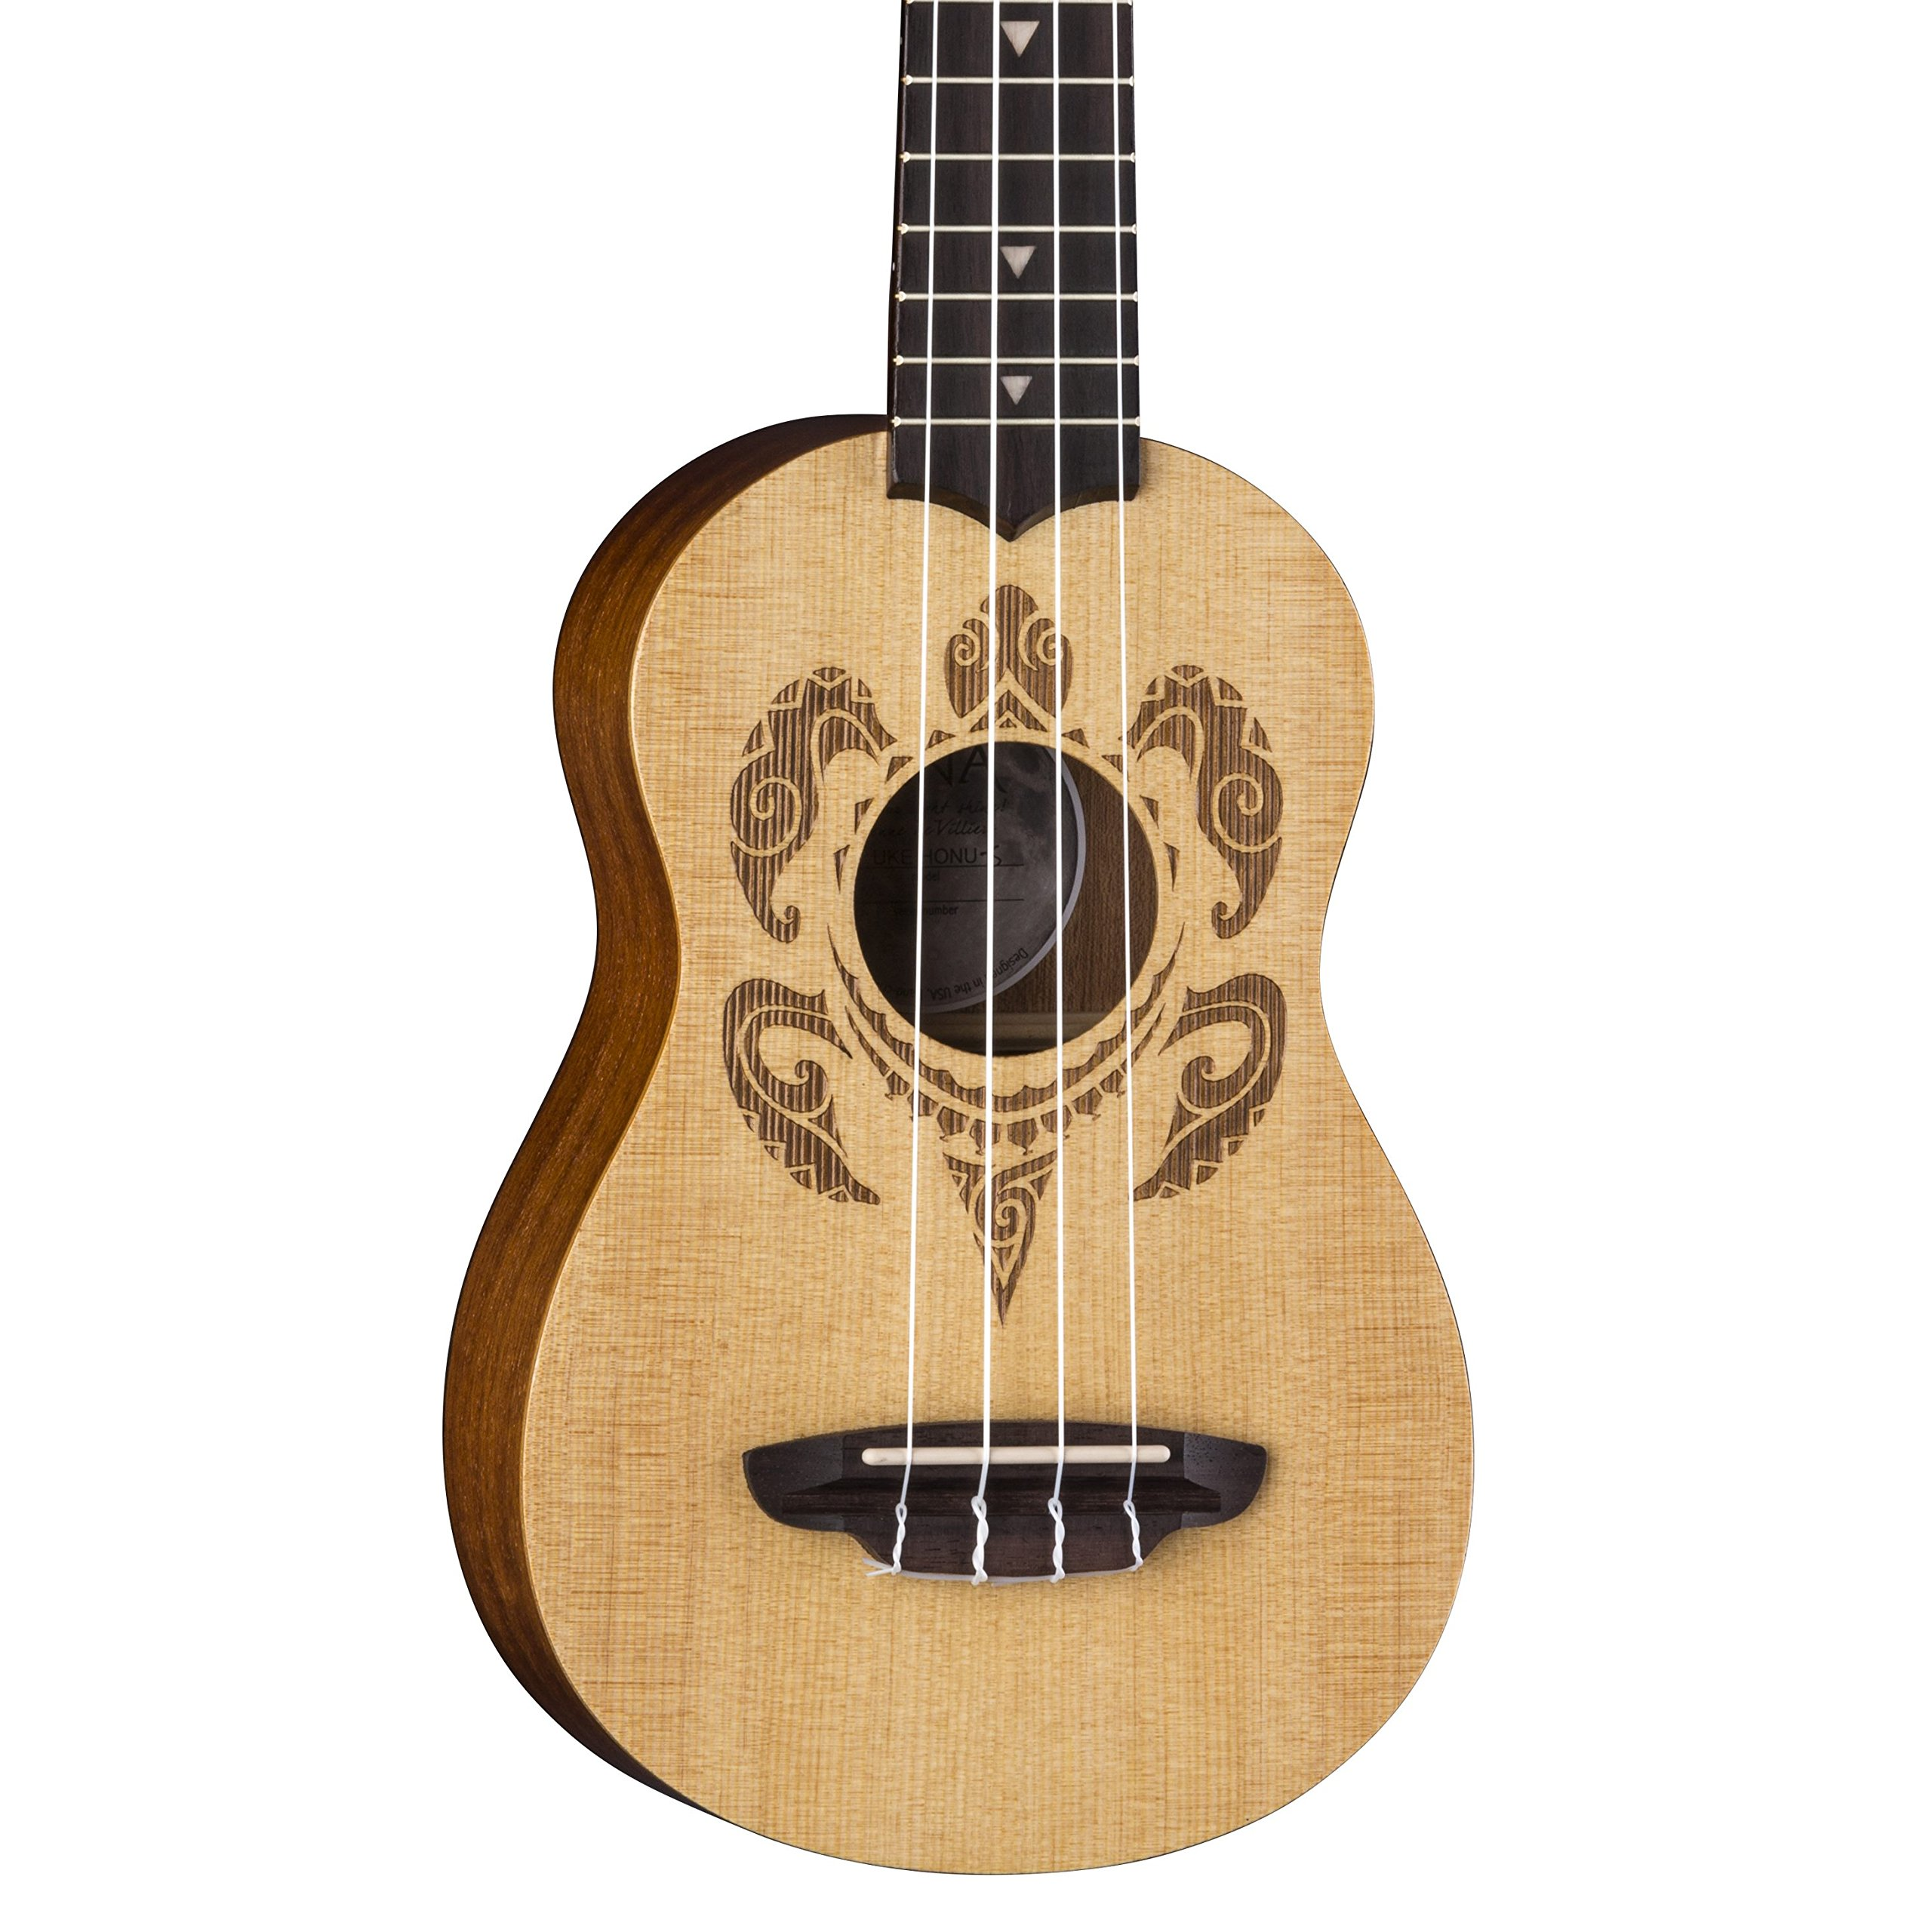 Luna Honu Turtle Spruce Soprano Ukulele with Gig Bag, Satin Natural by Luna Guitars